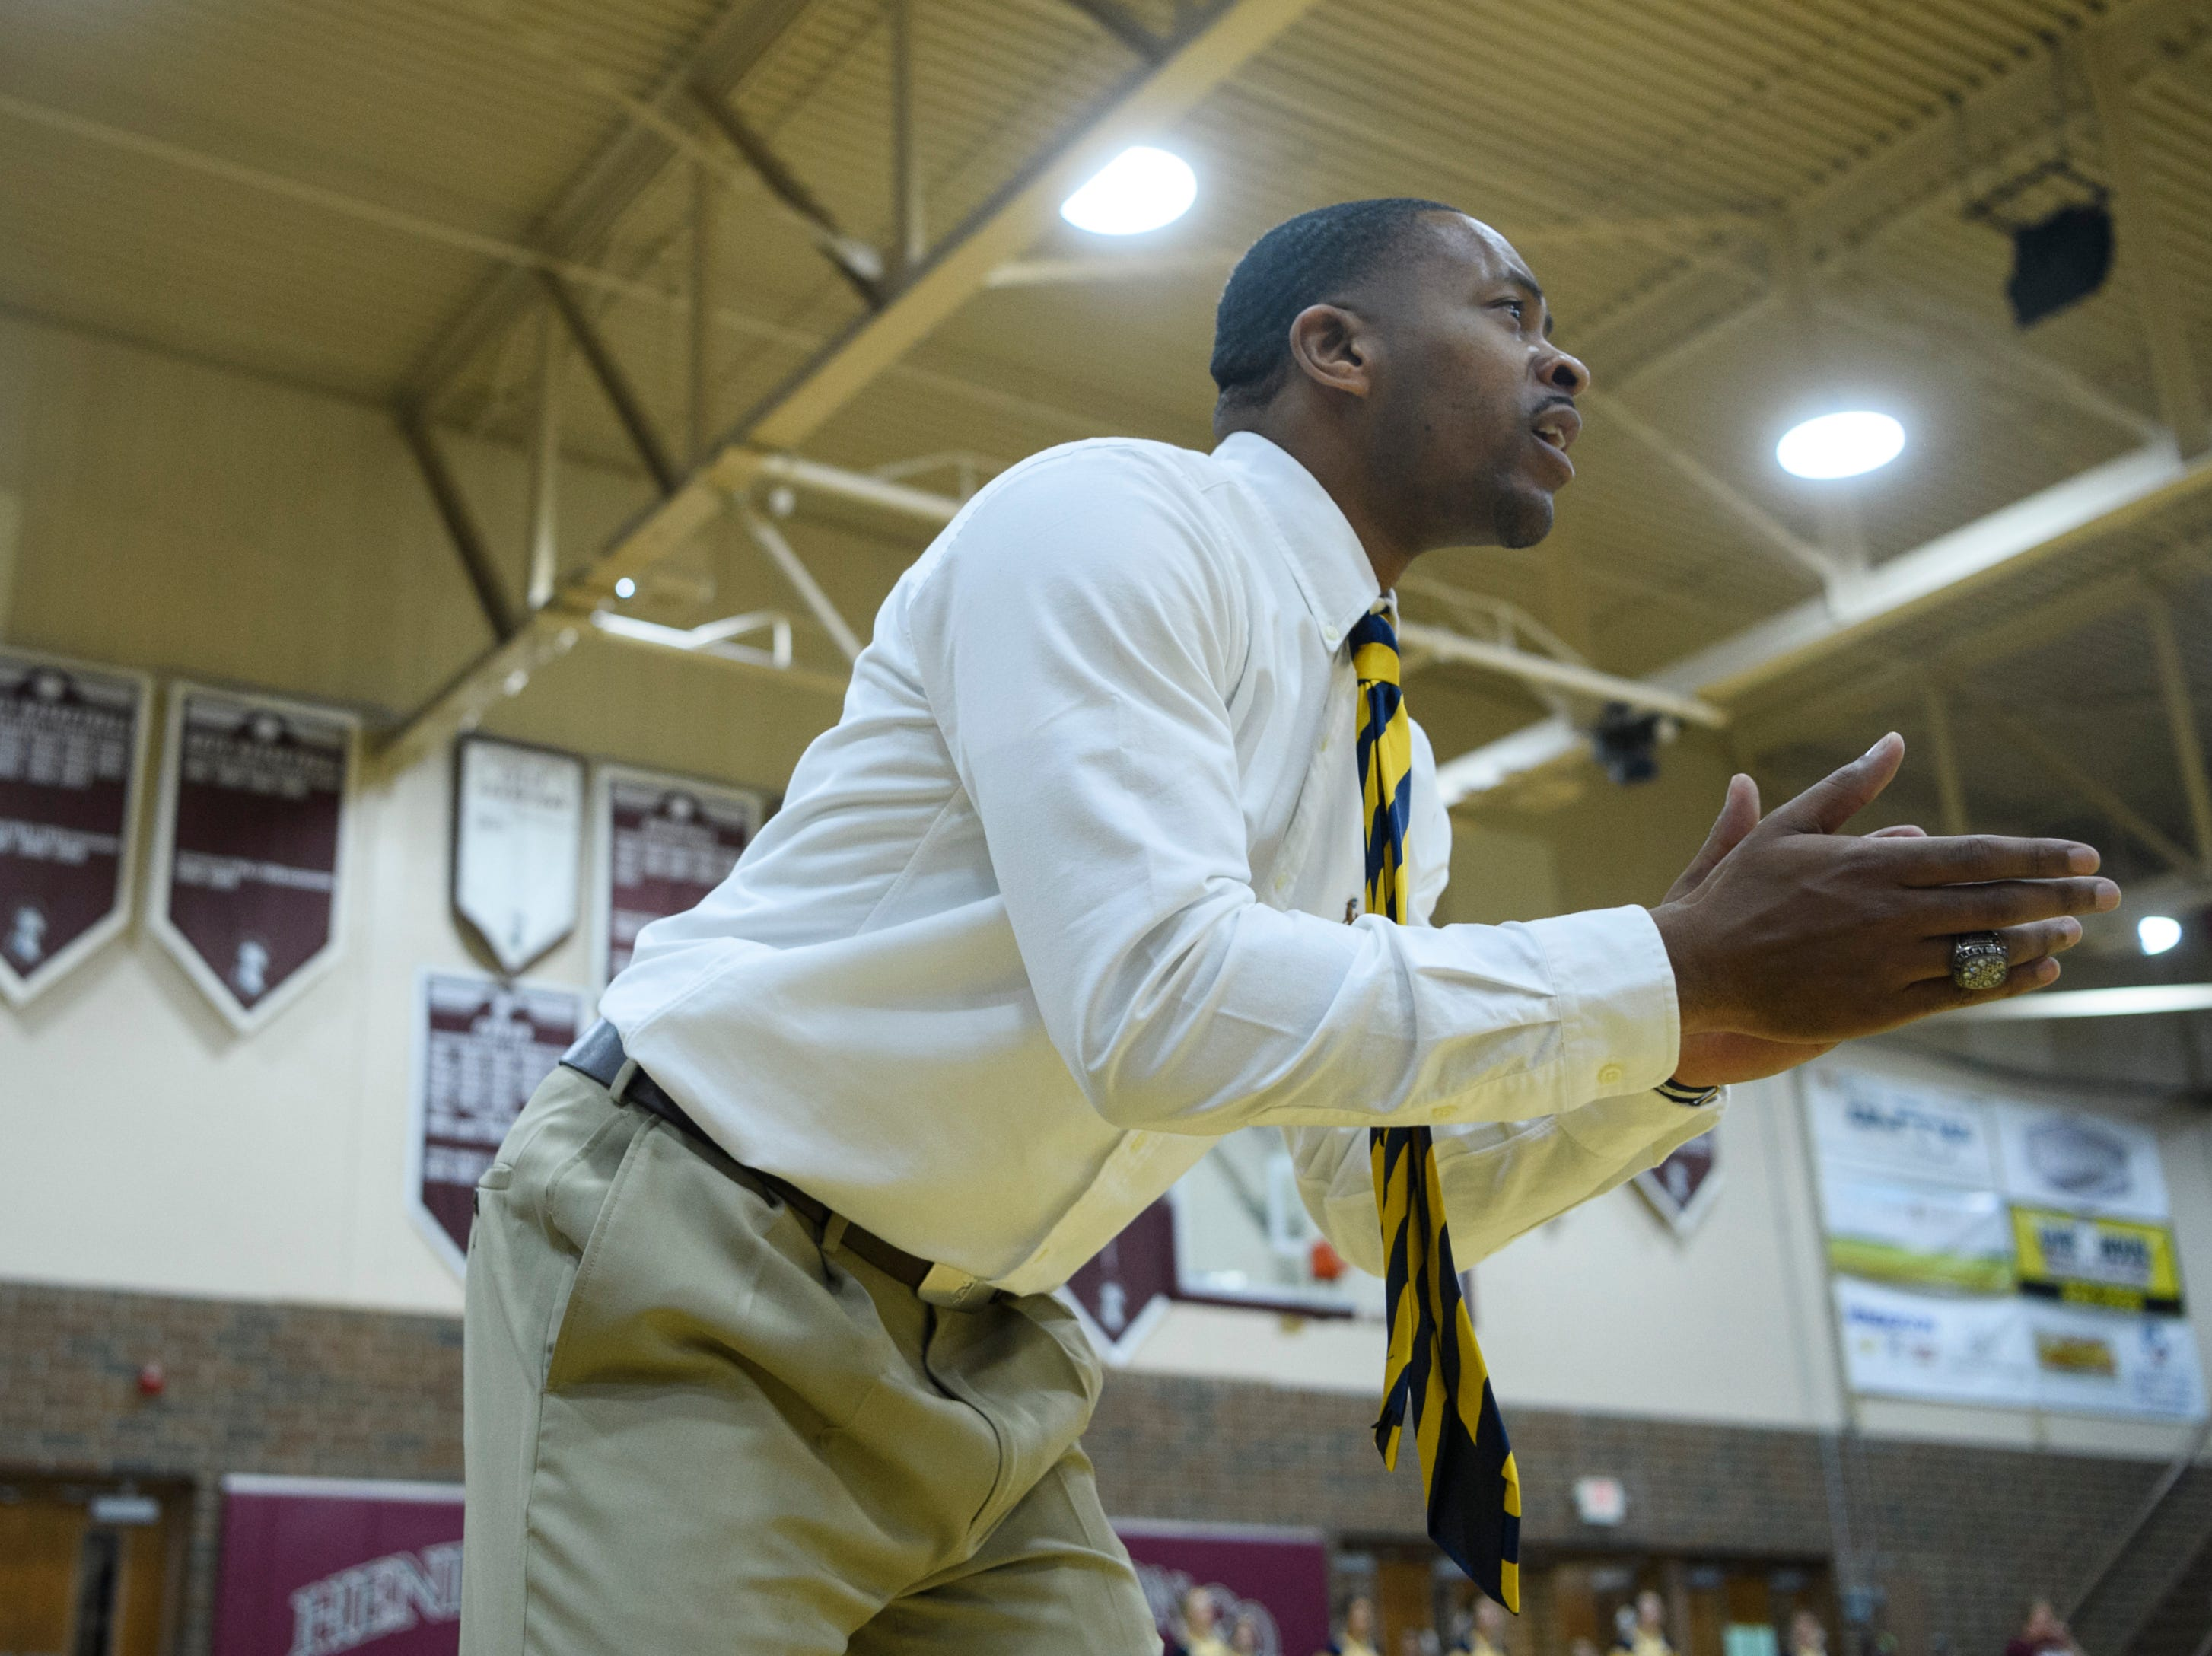 Day School Head Coach Austin Brooks reacts as his team plays against the Henderson Colonels in the Independence Bank Classic at Henderson High School in Henderson, Ky., Saturday, Dec. 8, 2018. The Colonels defeated the Eagles 56-51.